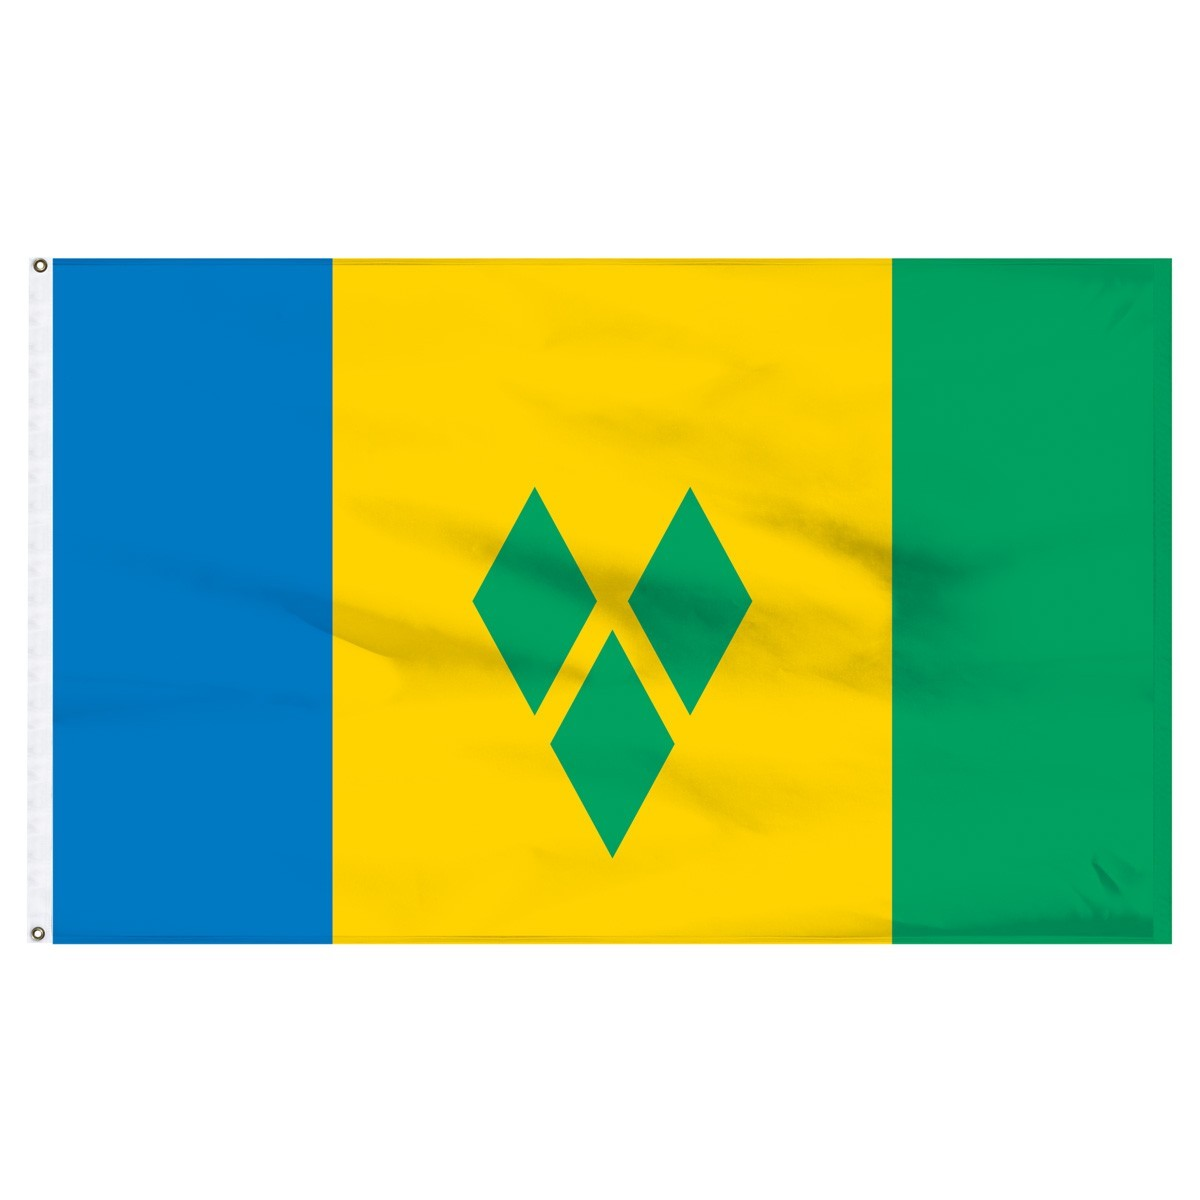 Saint Vincent & Grenadines 3' x 5' Outdoor Nylon Flag